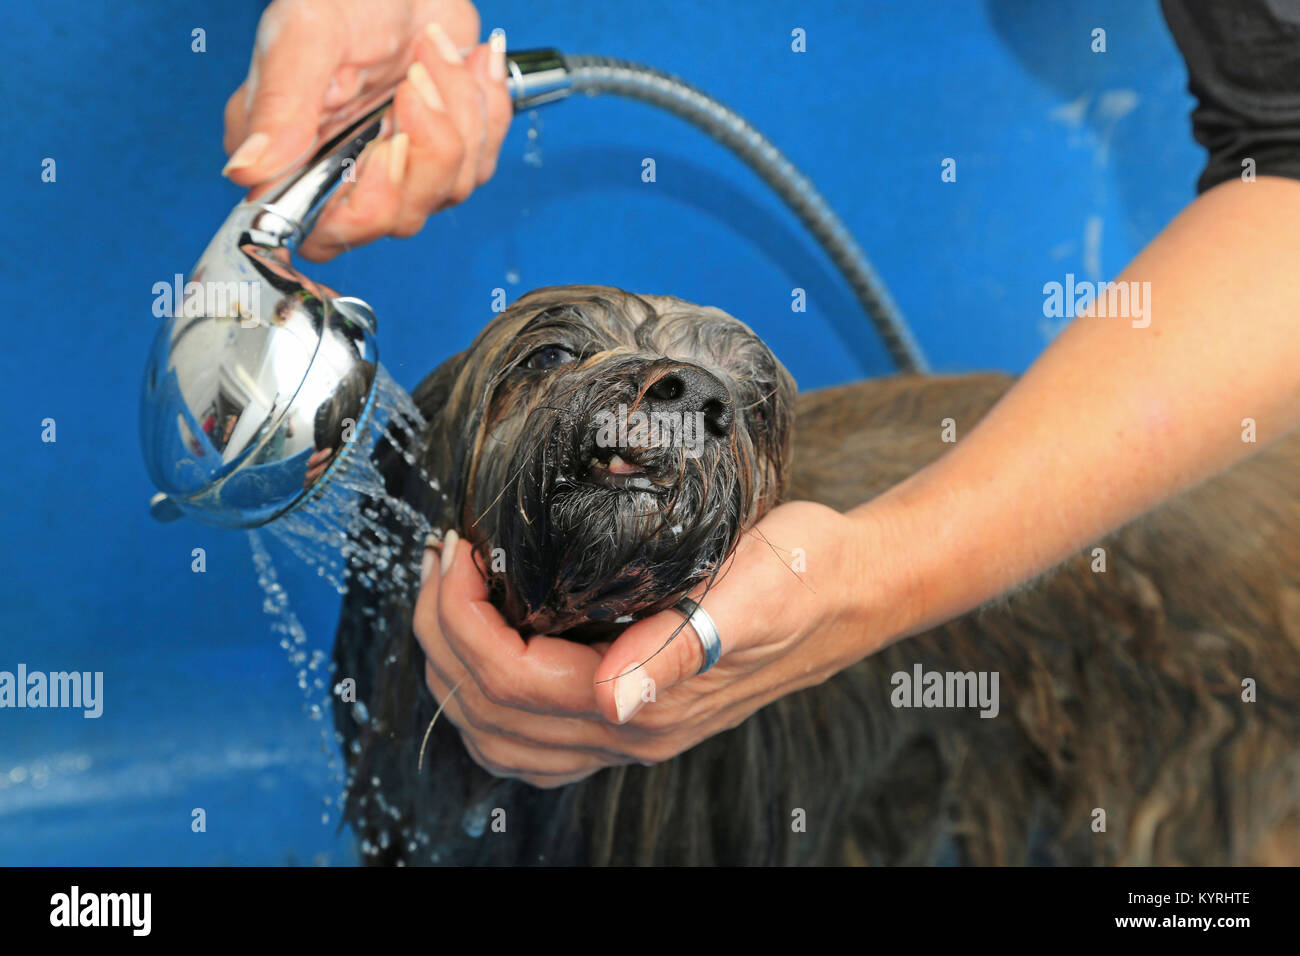 Lhasa Apso At Dog Groomer Spraying With Hand Held Shower Head Stock